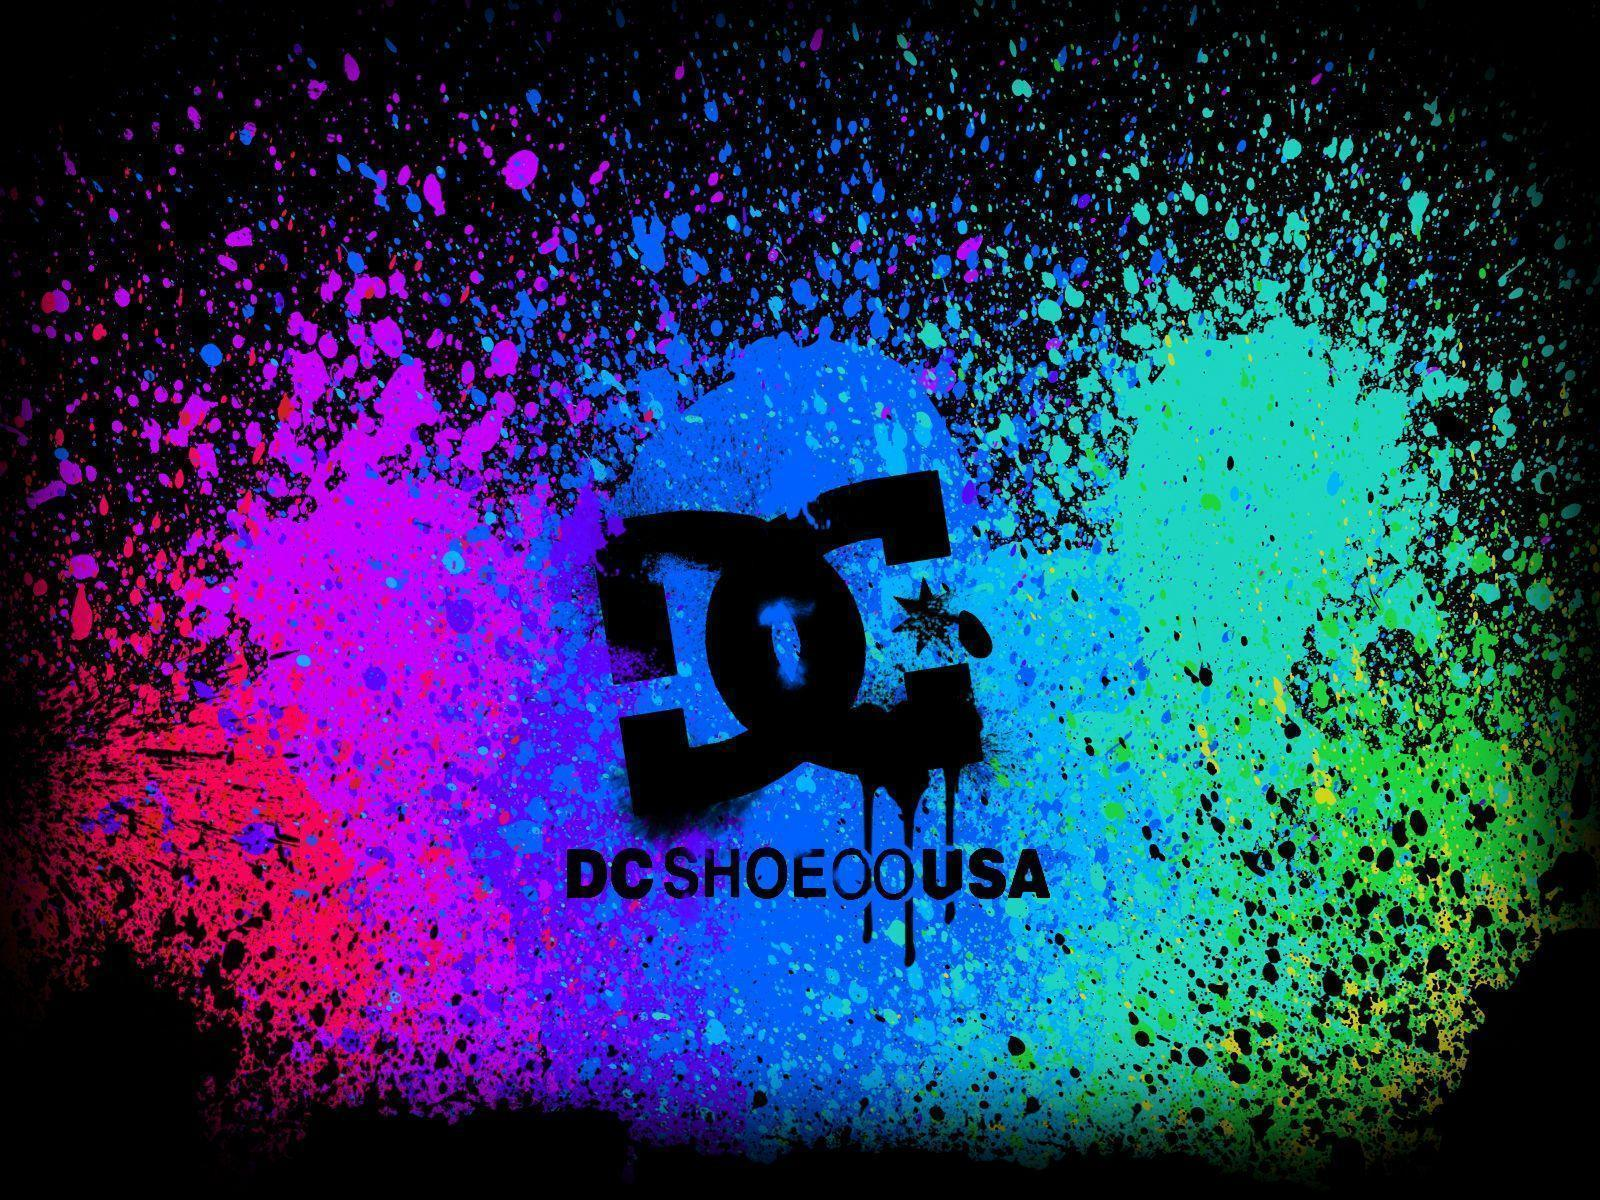 HD Dc Shoes Logo Wallpapers | HD Wallpapers, Backgrounds, Images ...